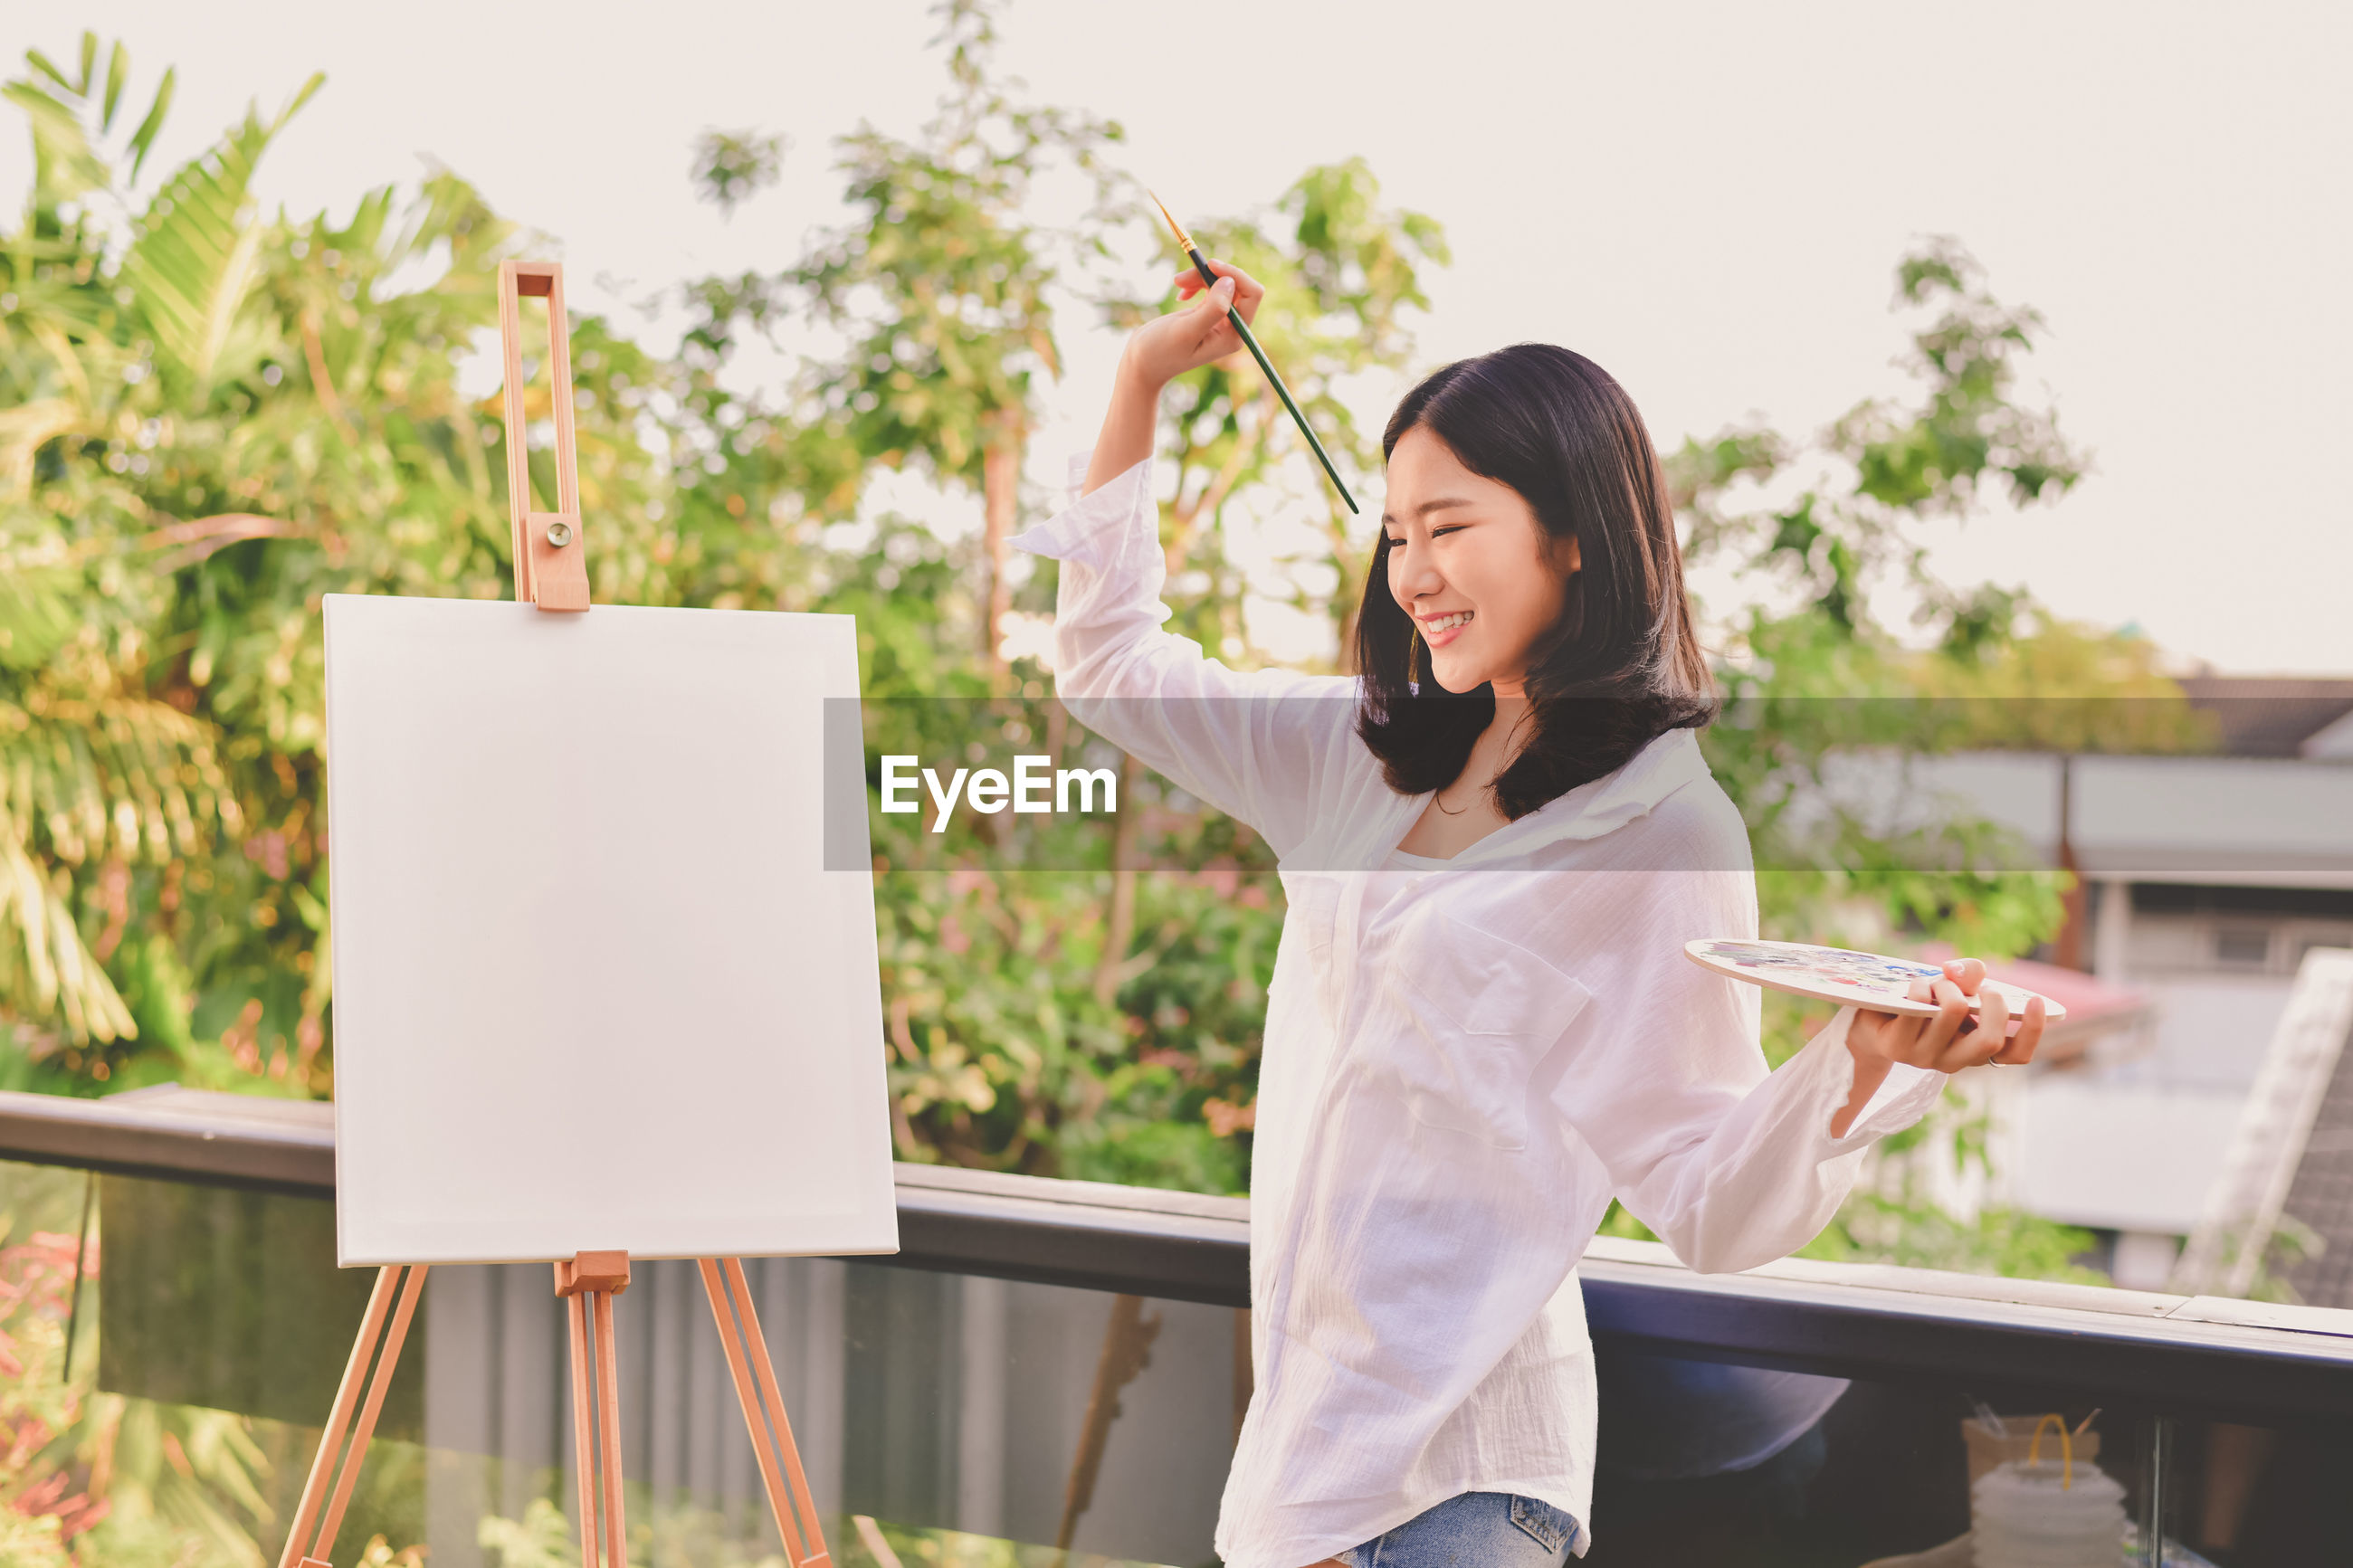 Smiling woman standing by canvas against sky